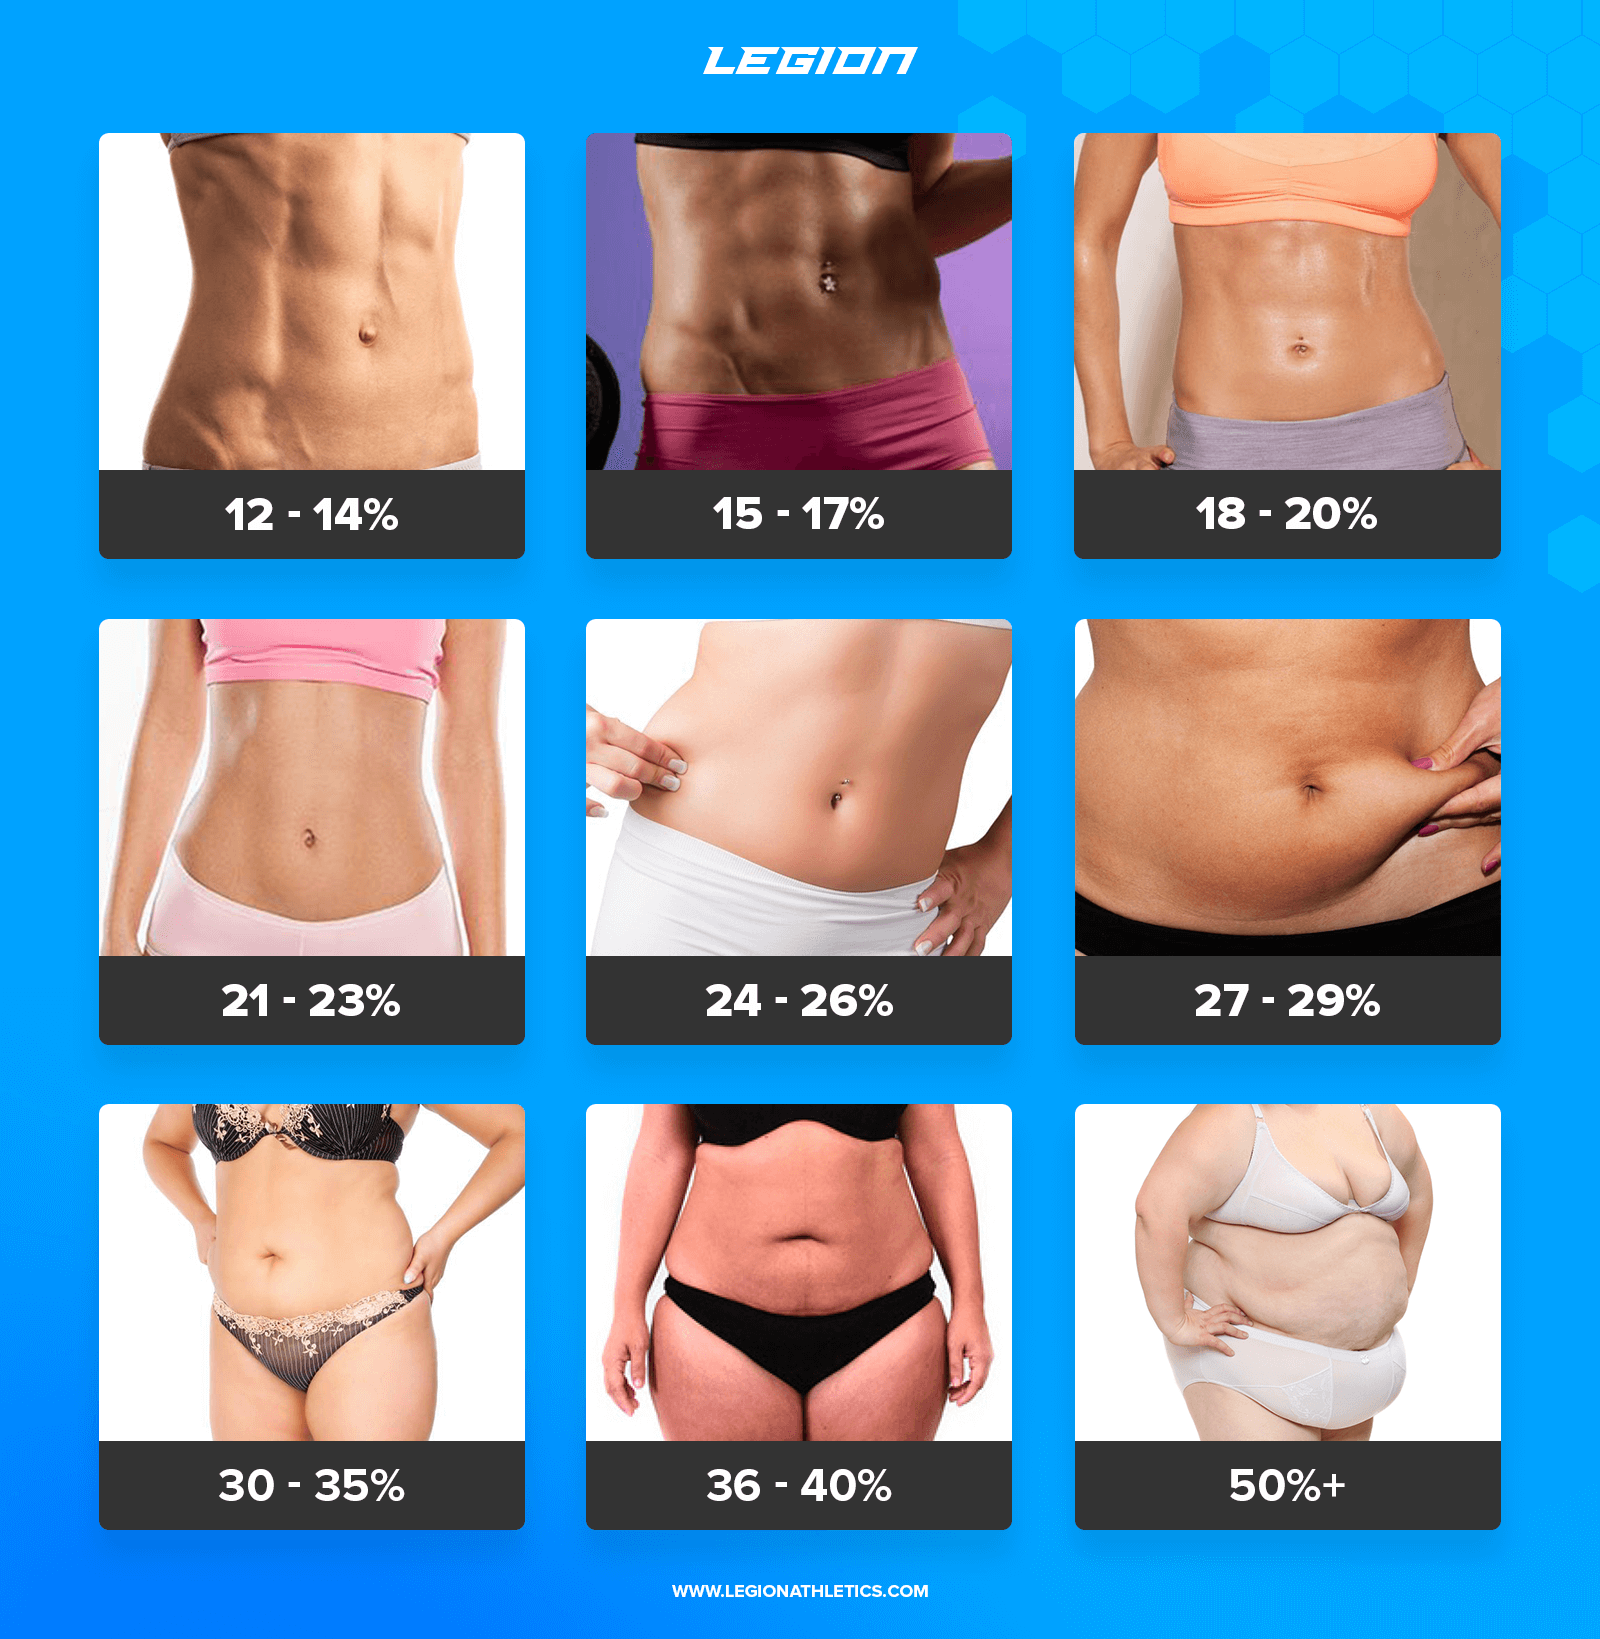 If I have a body fat percentage of 10% (female, 10cm, 10kg), how